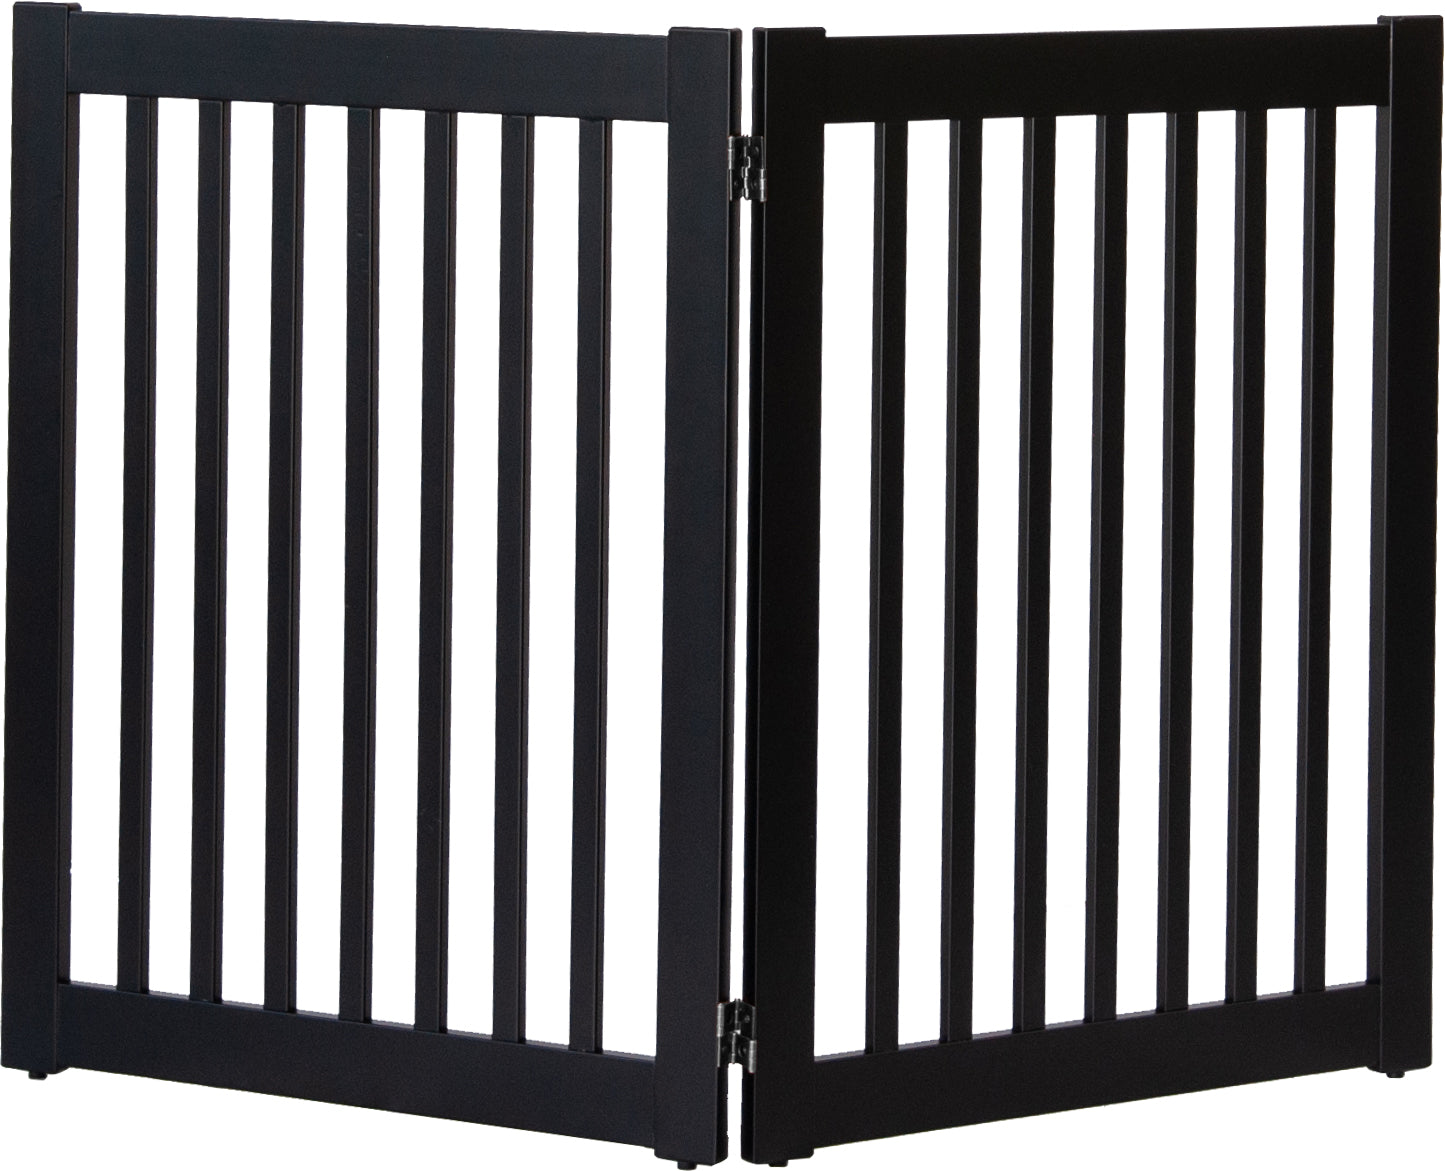 "Black 2 Panel Dog Gate 32"" inch tall"